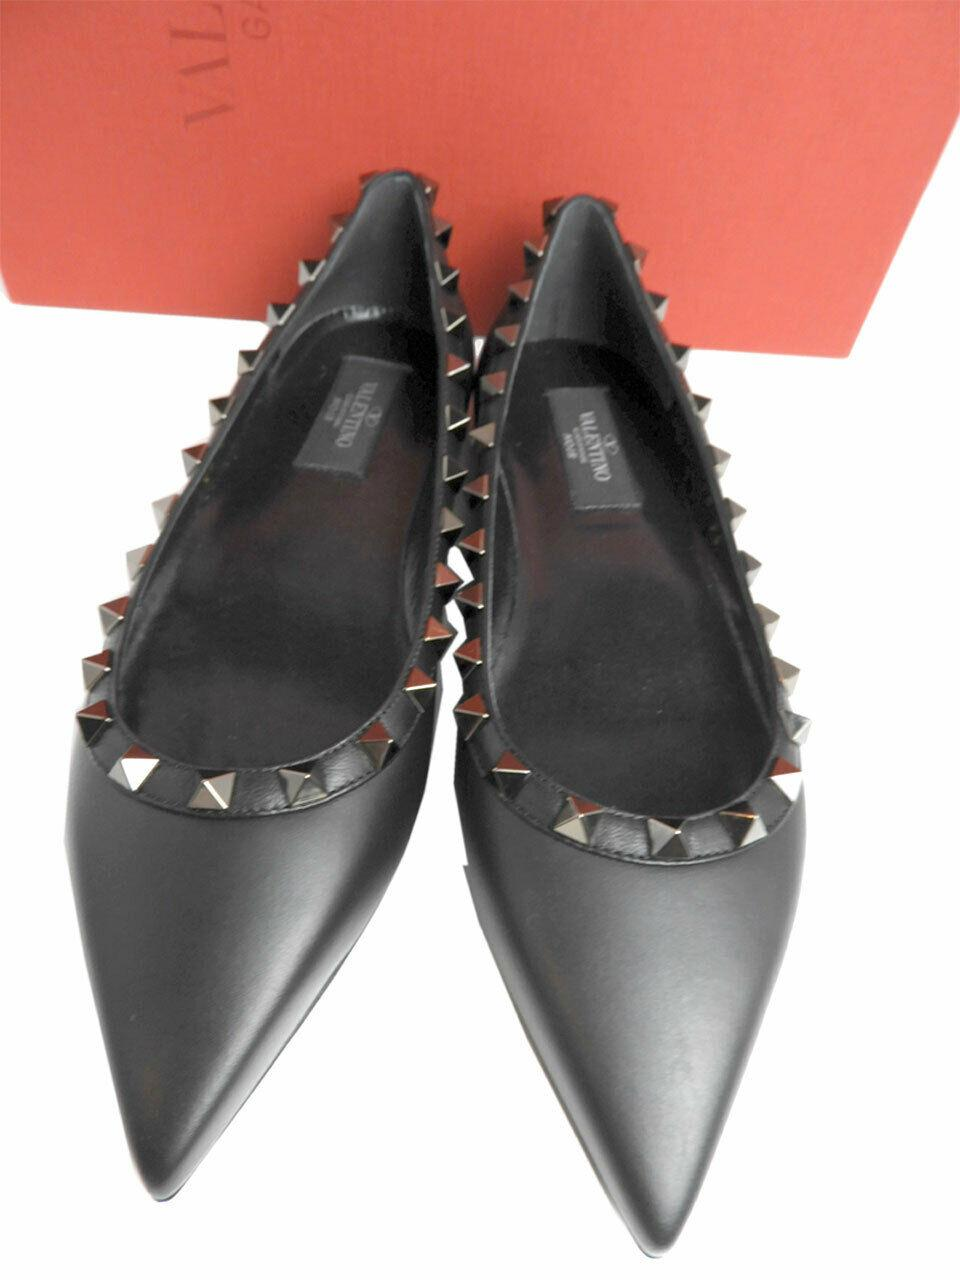 Valentino Rockstud Flats Black Leather Pointy Toe Pumps Shoes 36